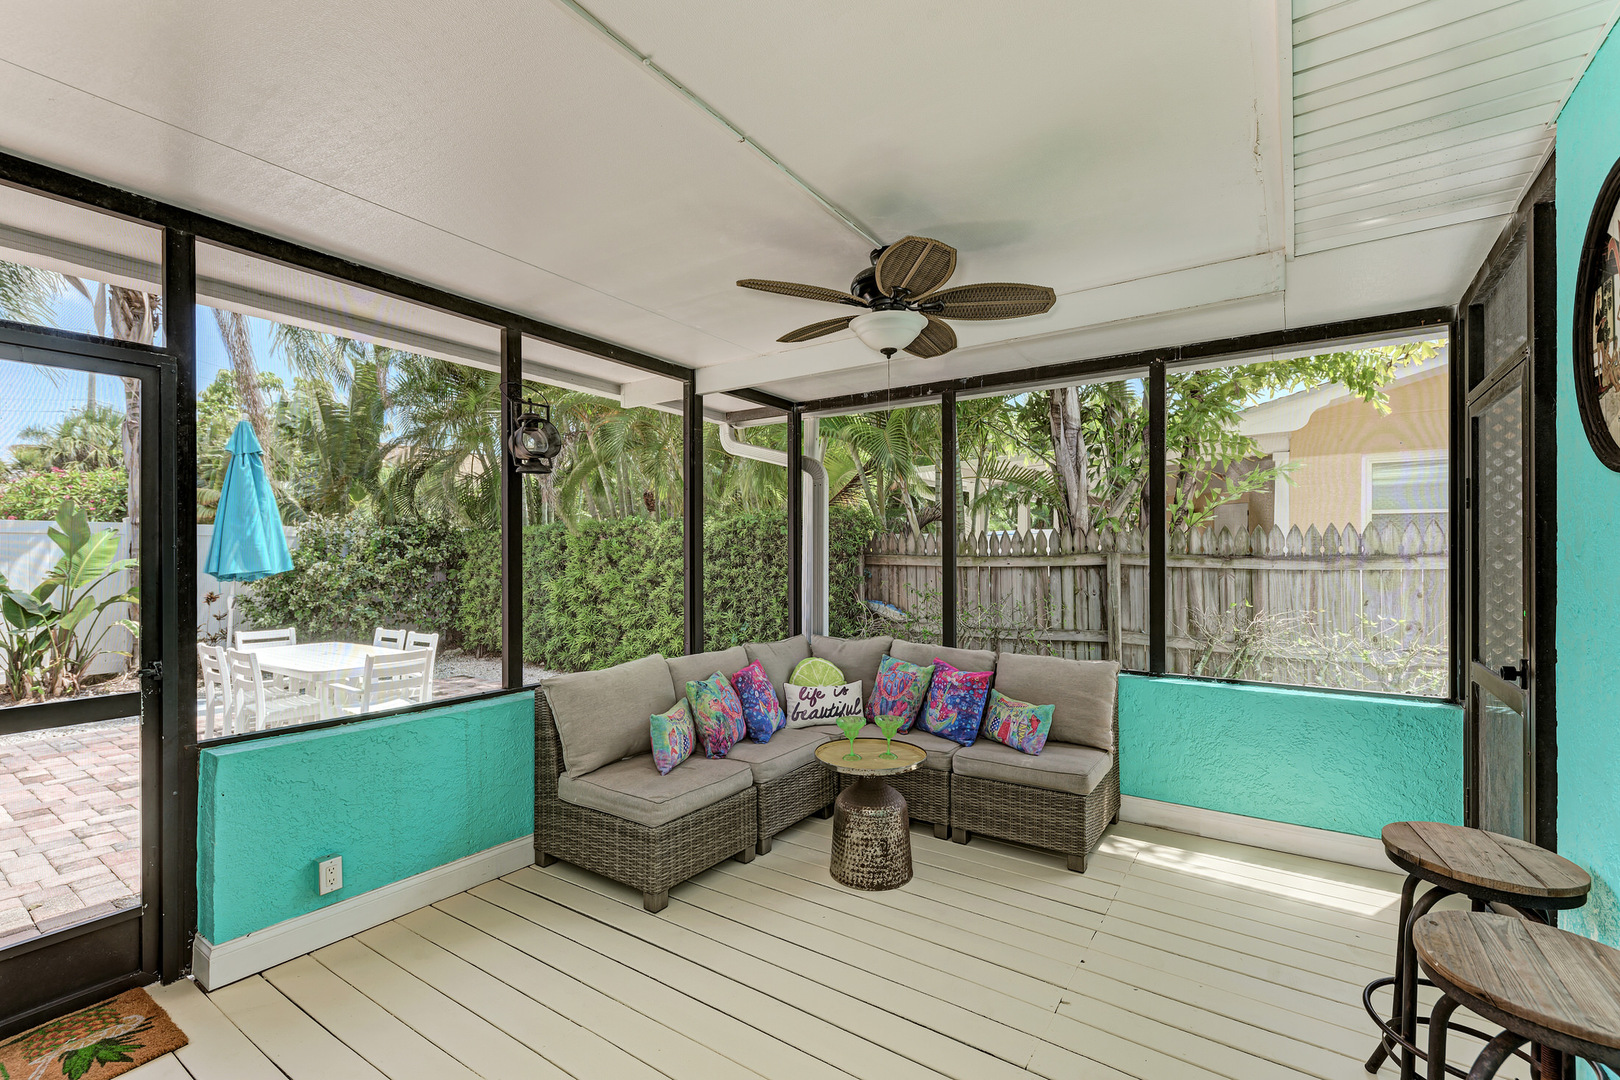 Barefoot Bungalow screened in patio